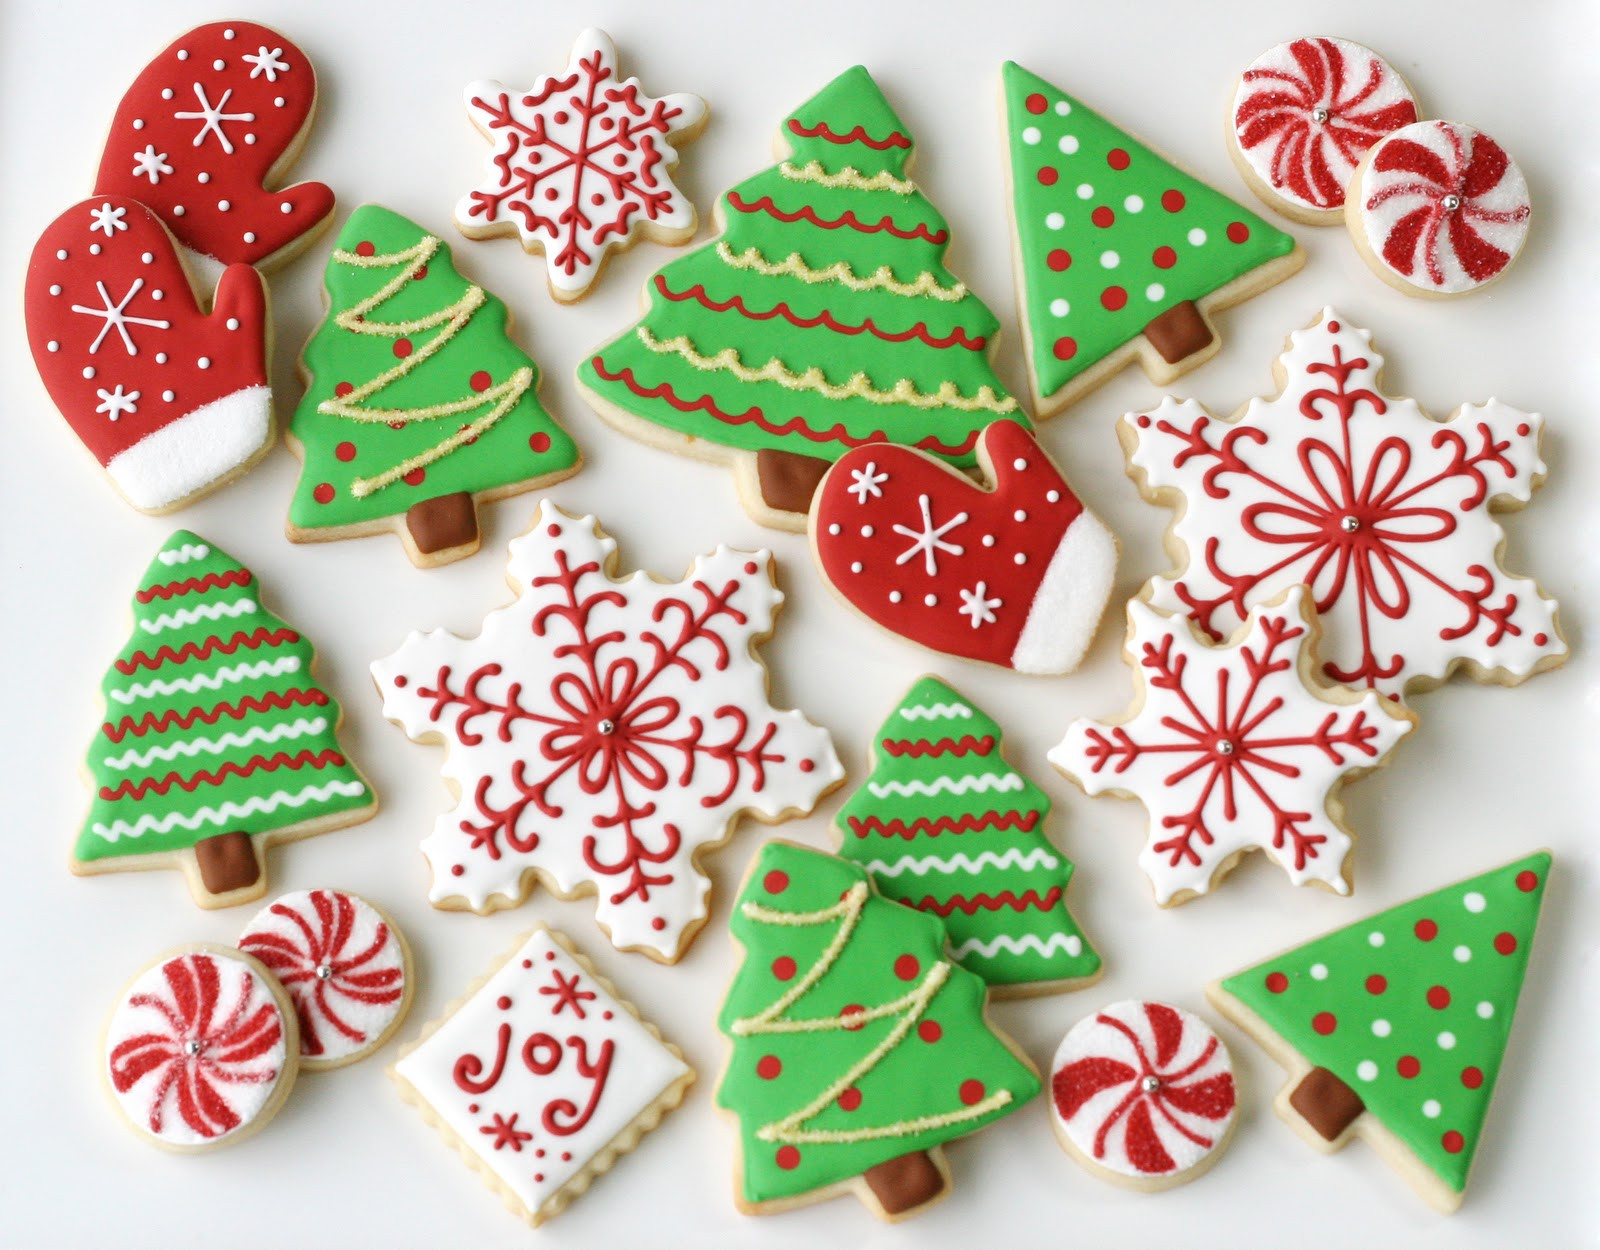 Decorated Christmas Cookies Recipes  Christmas Cookies and Cute Packaging – Glorious Treats